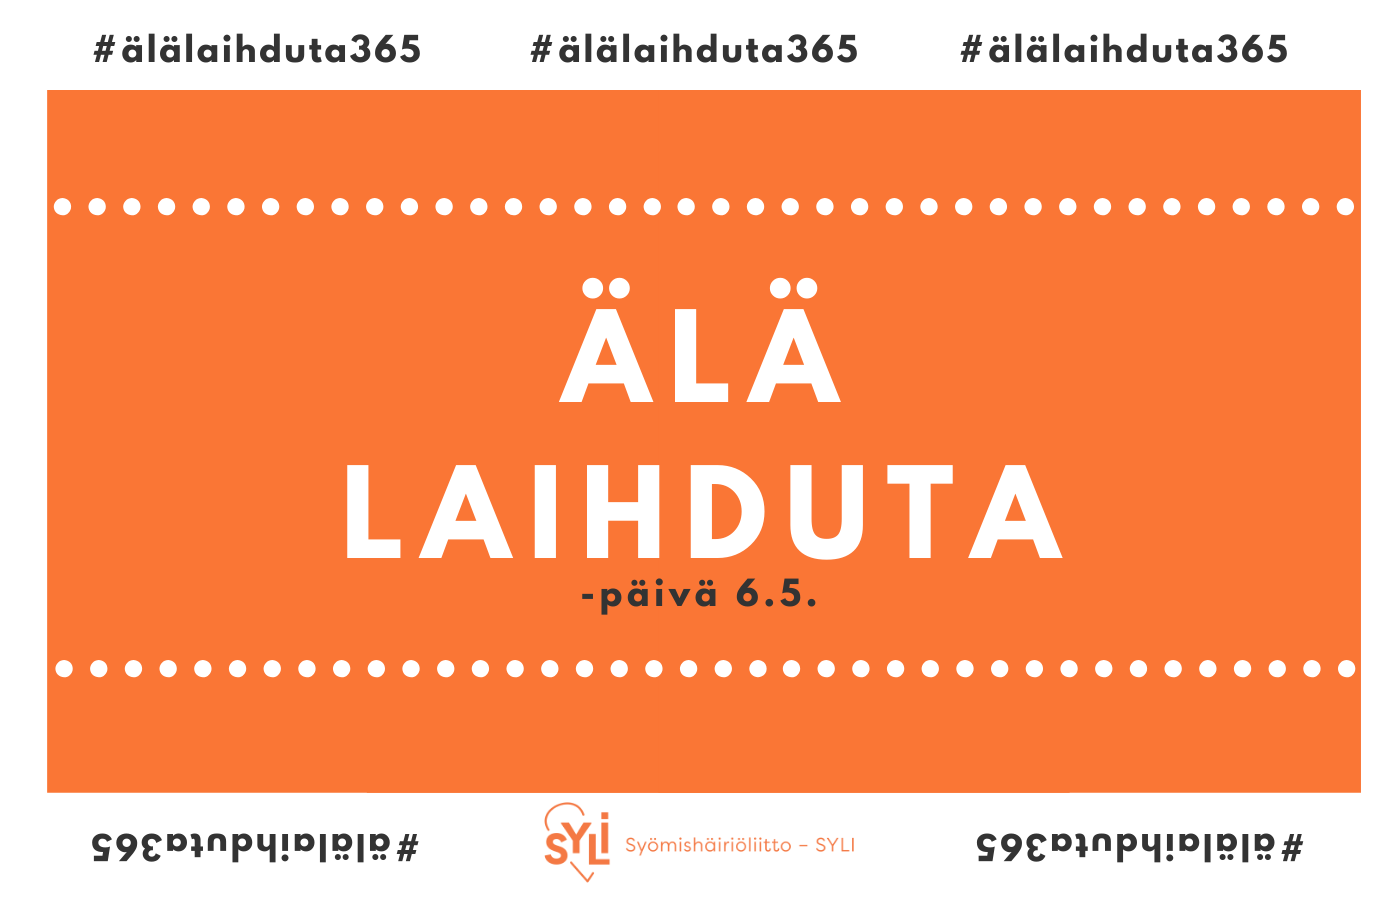 Älä laihduta -päivä 6.5.